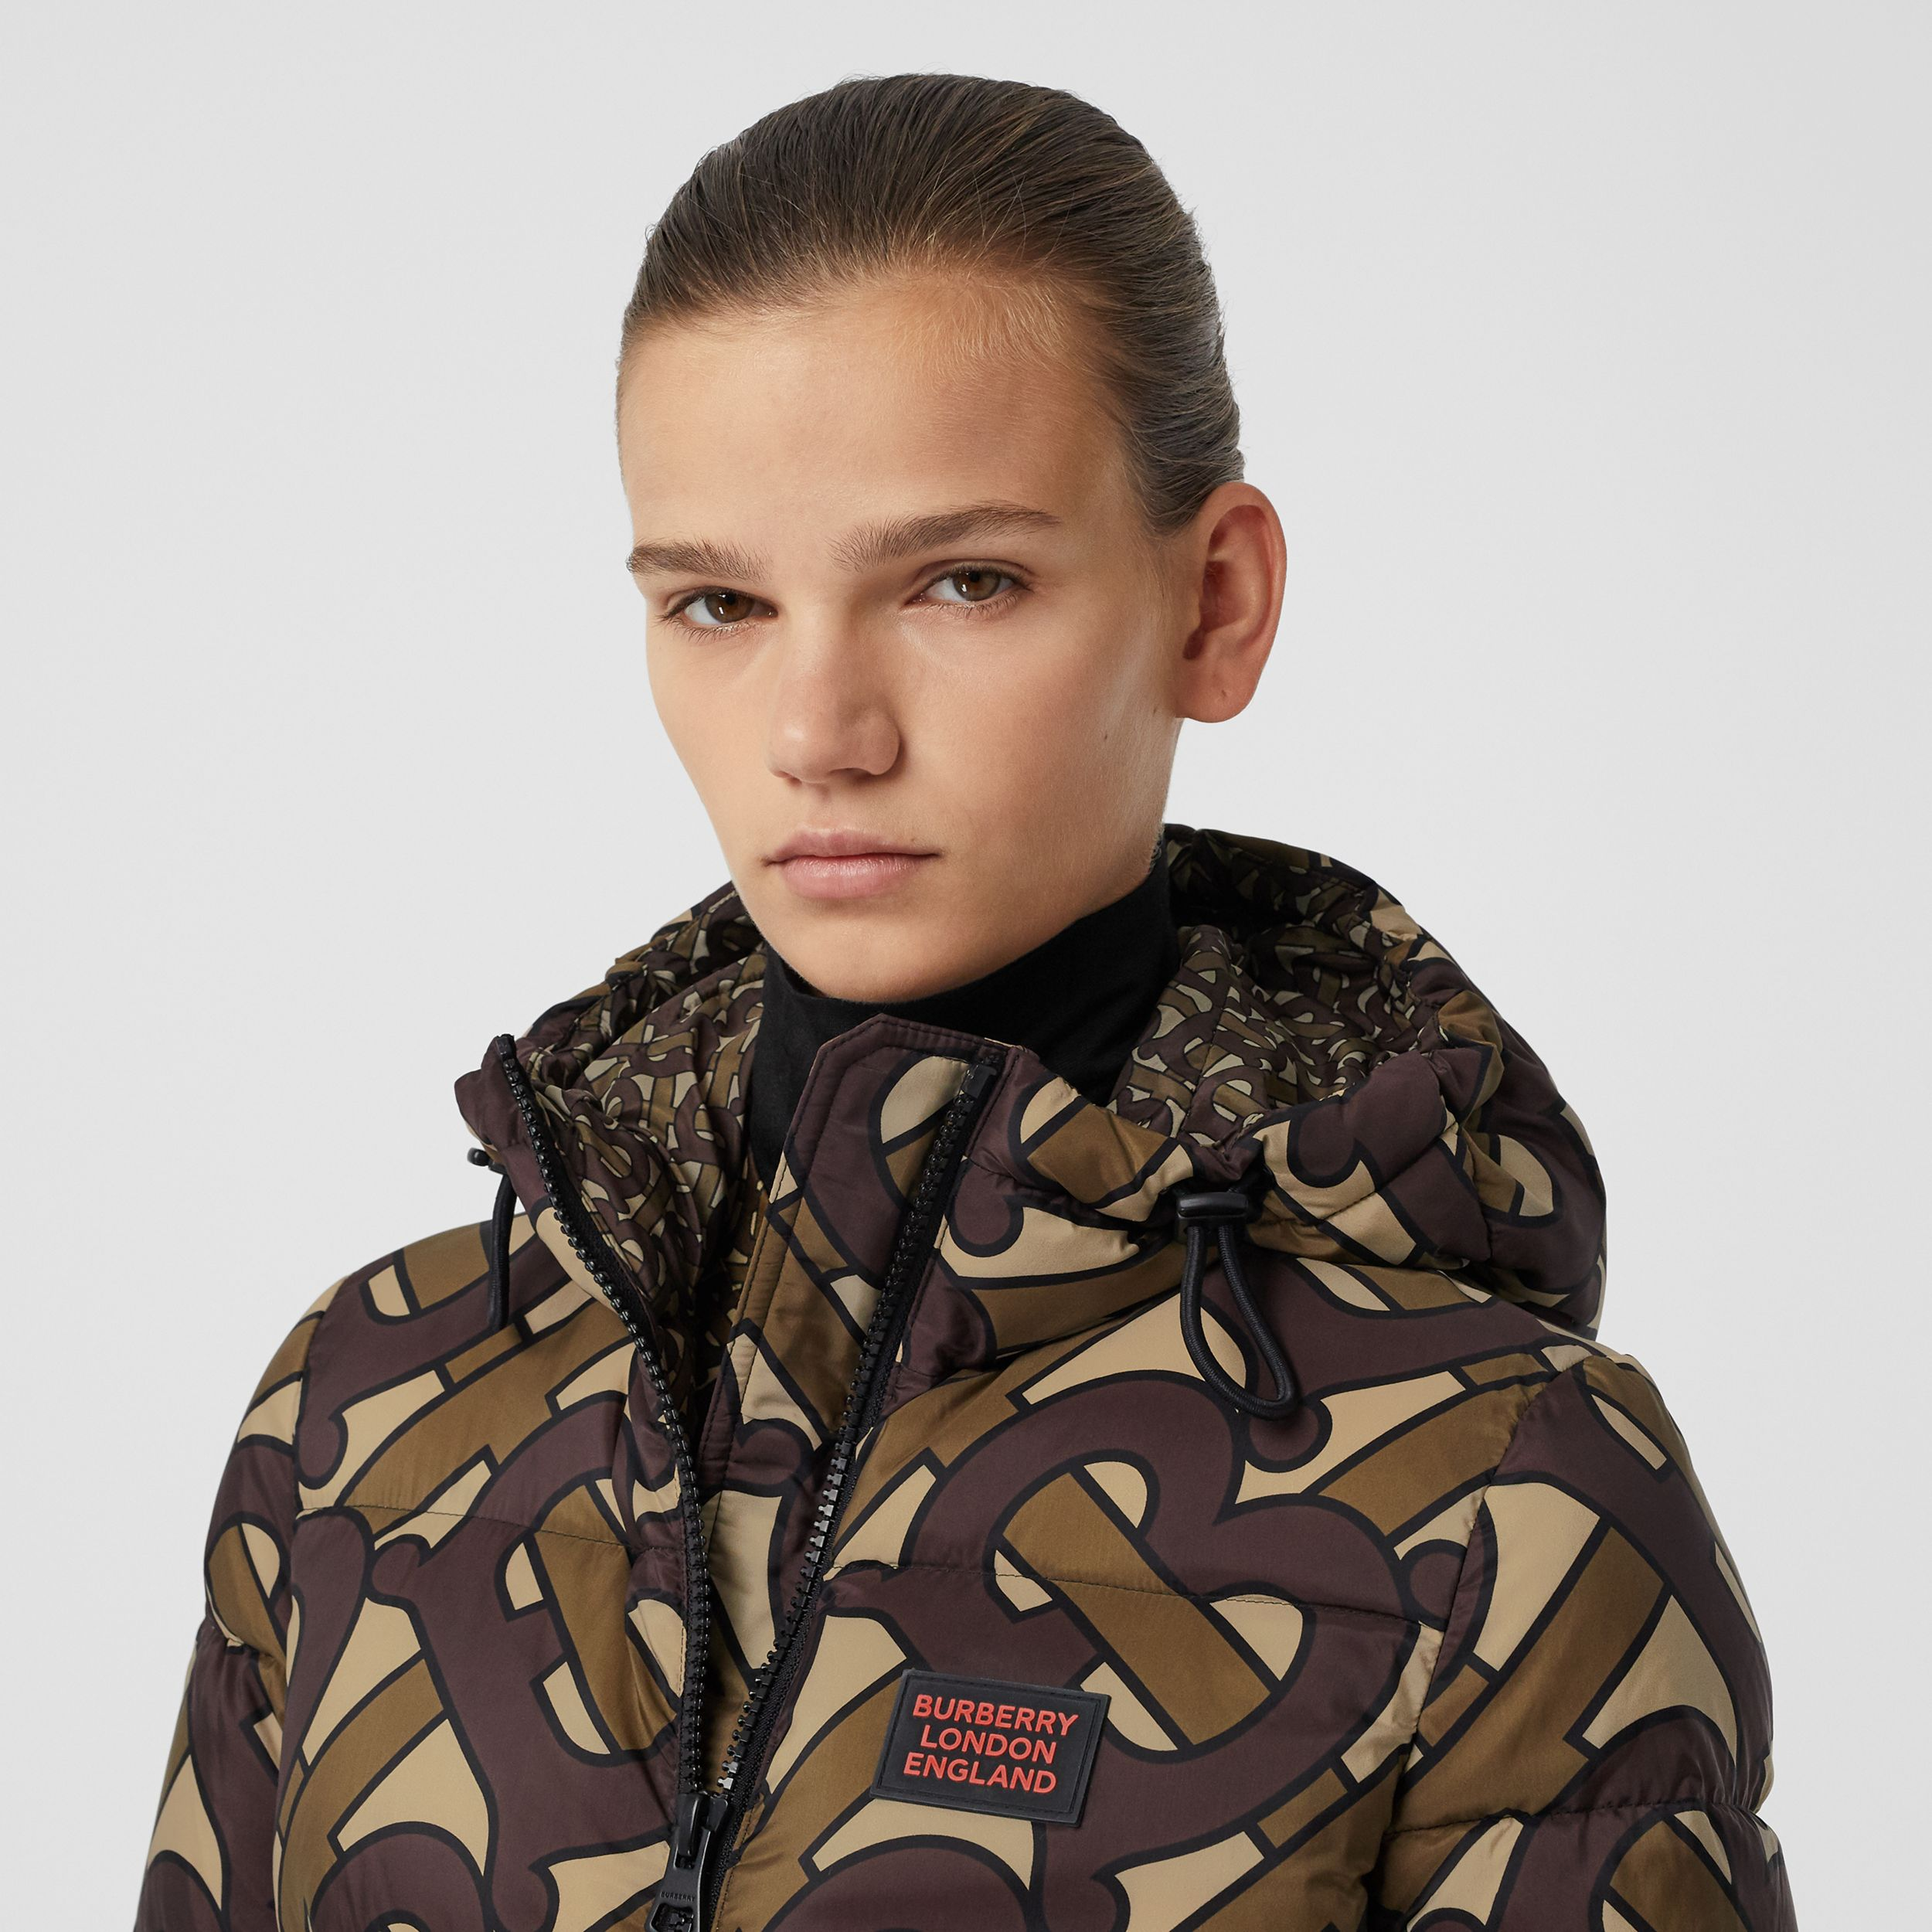 Monogram Print Hooded Puffer Jacket in Bridle Brown - Women | Burberry United States - 2